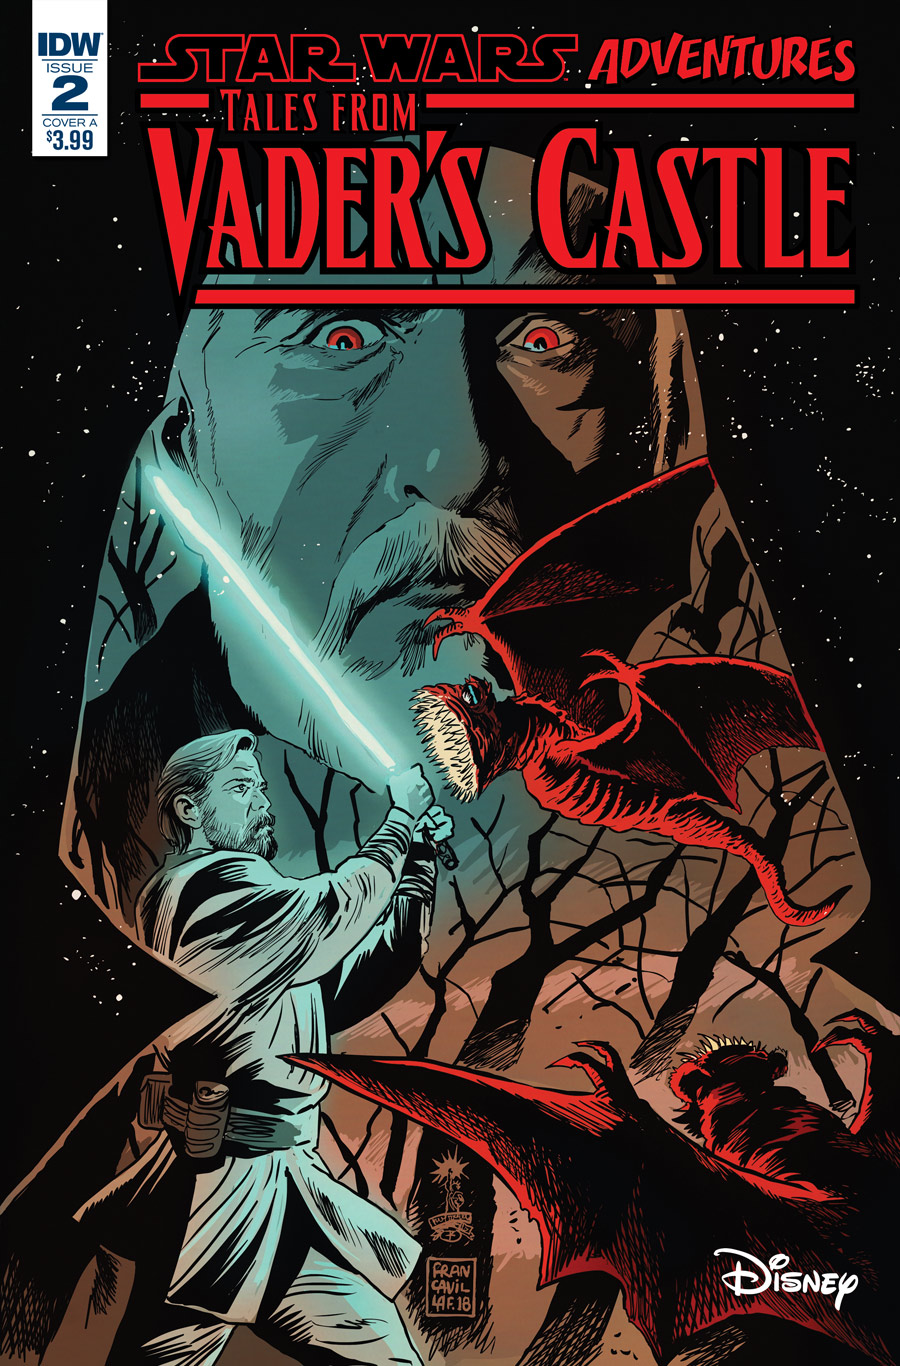 The cover of Tales from Vader's Castle #2.